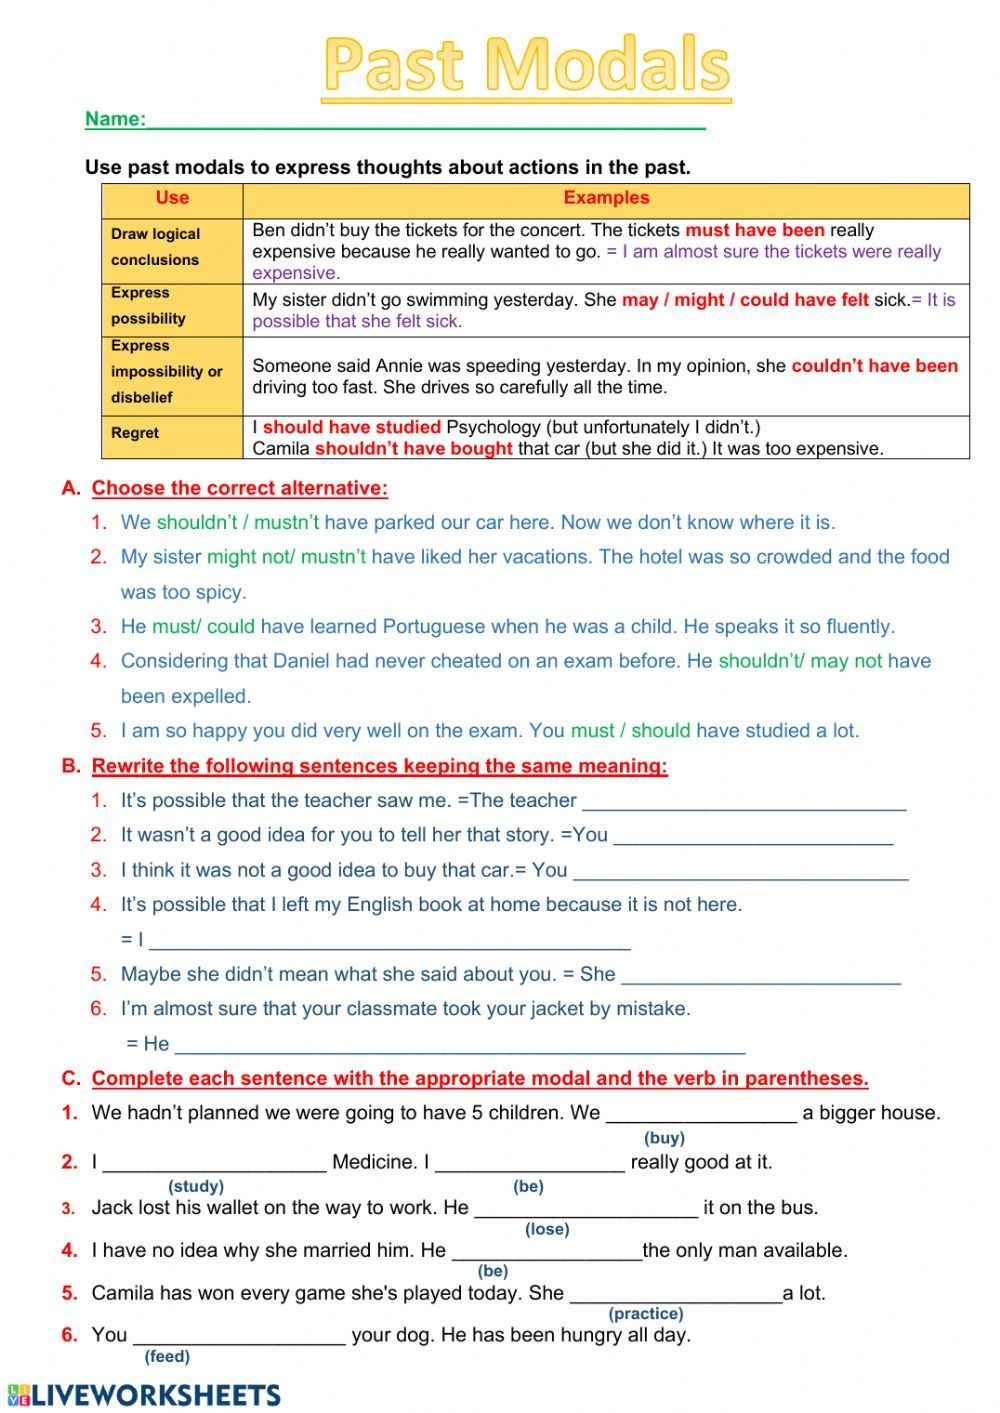 Modal Verbs Online Worksheet You Can Do The Exercises Online Or Download The Worksheet In 2020 Verb Worksheets English As A Second Language English Teaching Resources